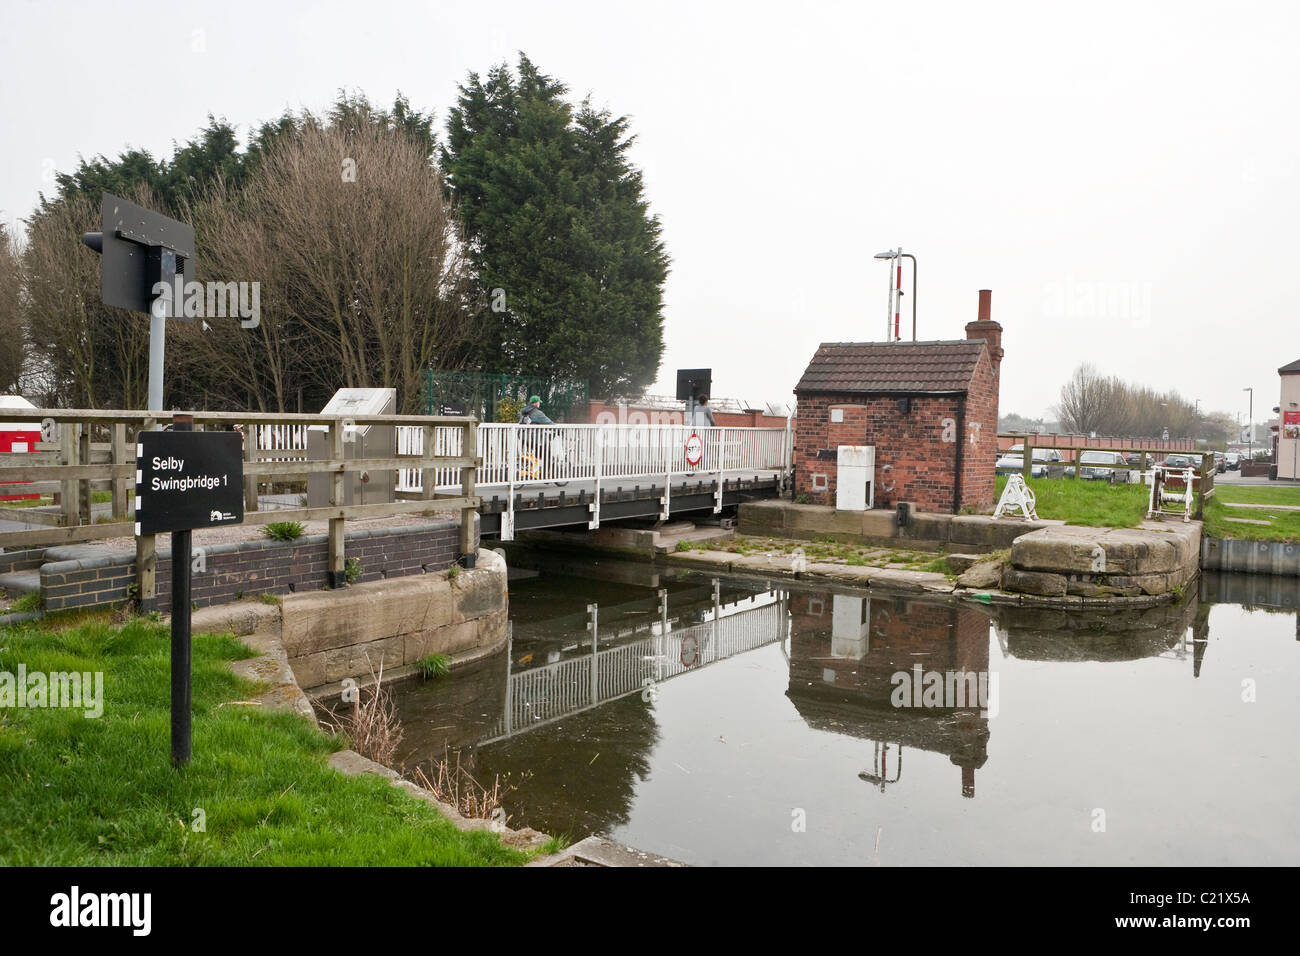 Selby Swing Bridge near Selby Lock at junction with the River Ouse, Selby, North Yorkshire. - Stock Image